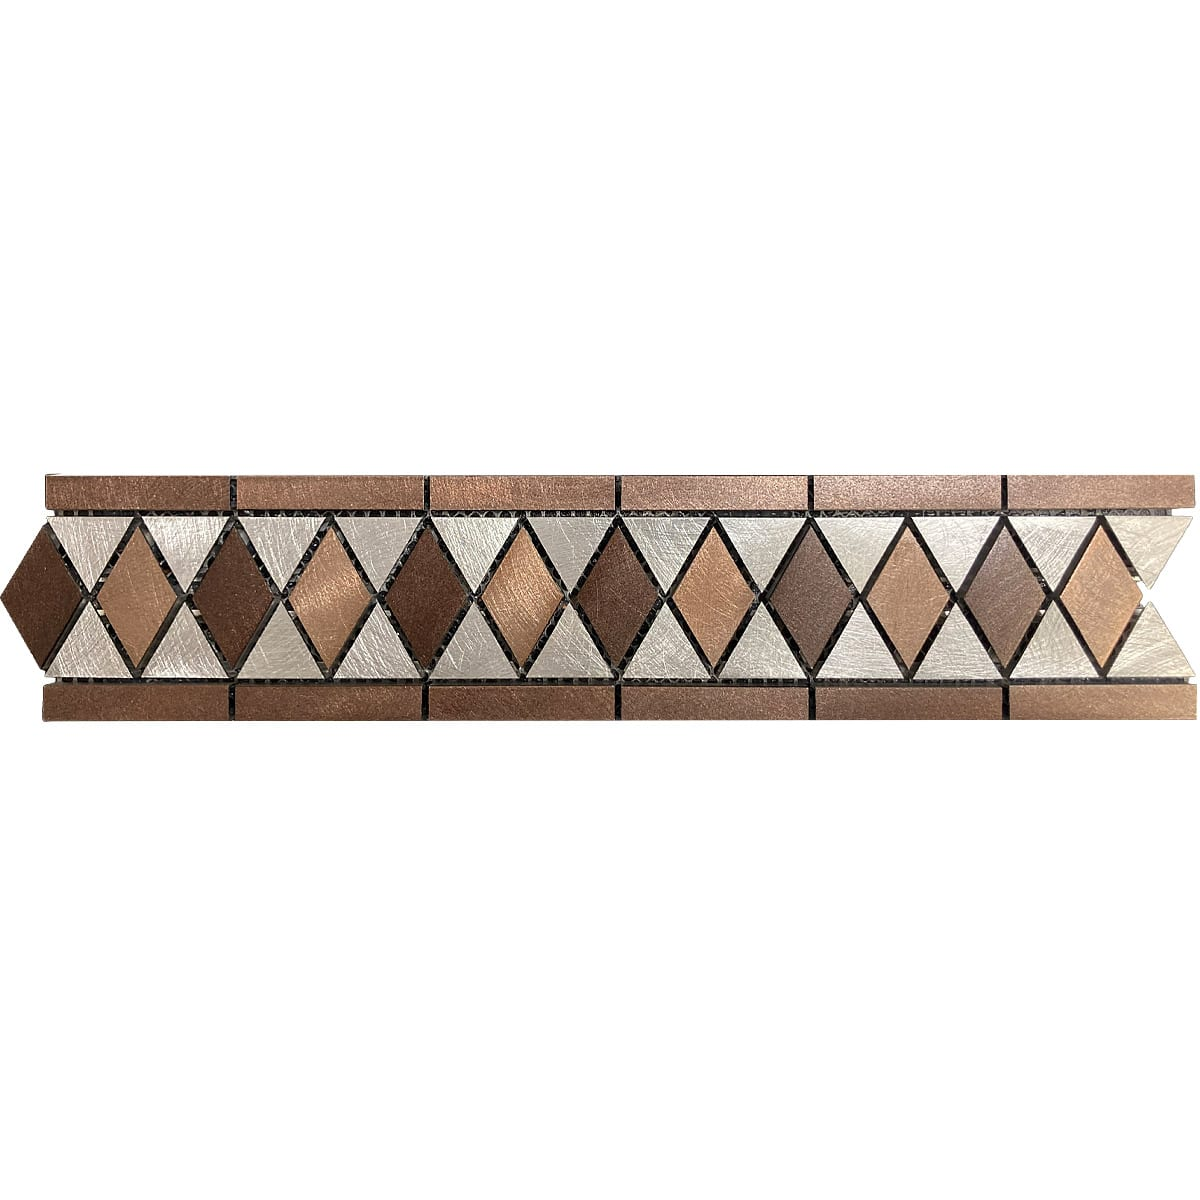 L00056 TOKOYO MULTI METAL TRIM COPPER 3X12